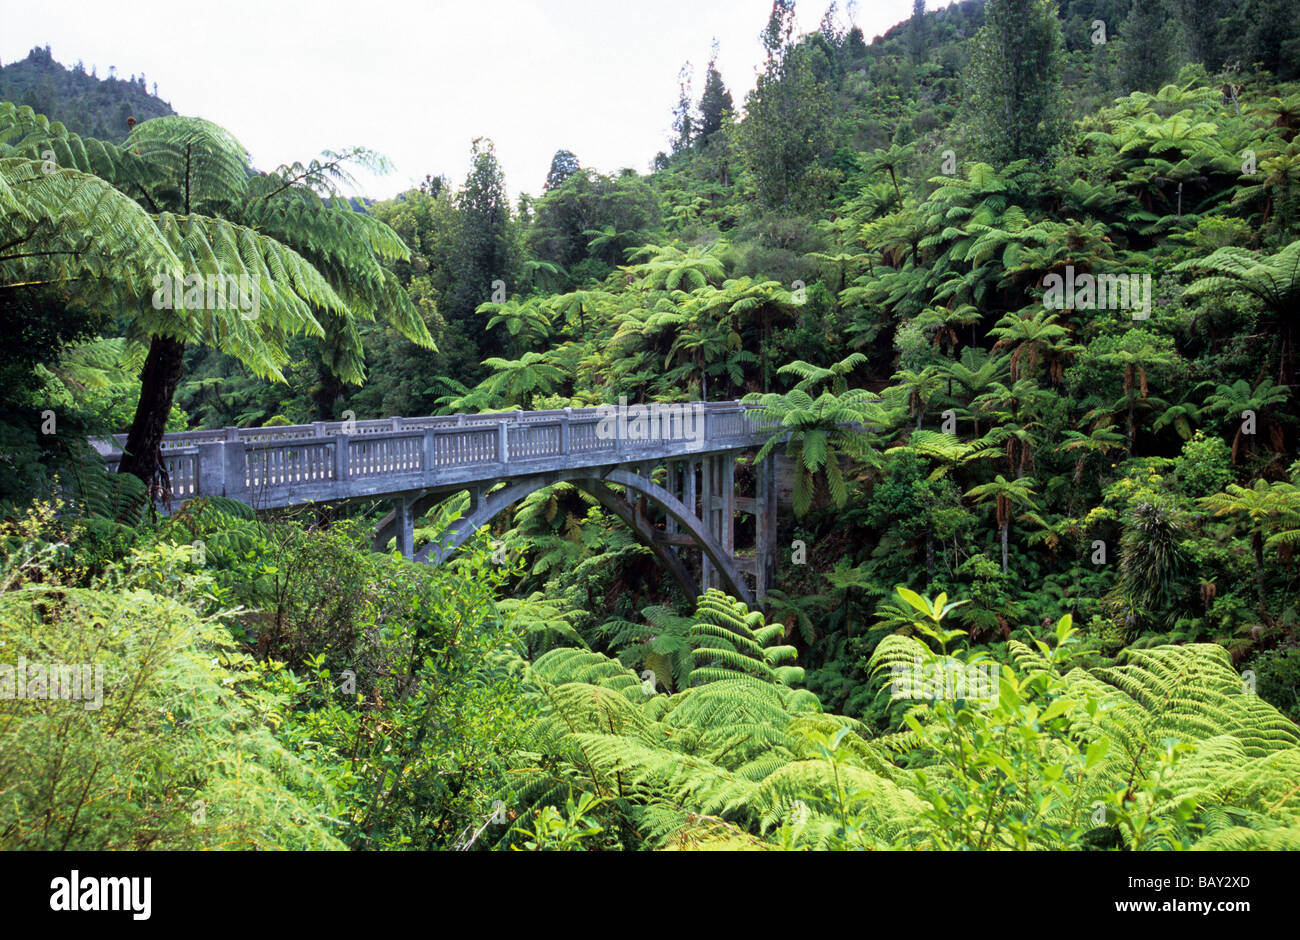 The Bridge to Nowhere in the greens, North Island, New Zealand - Stock Image